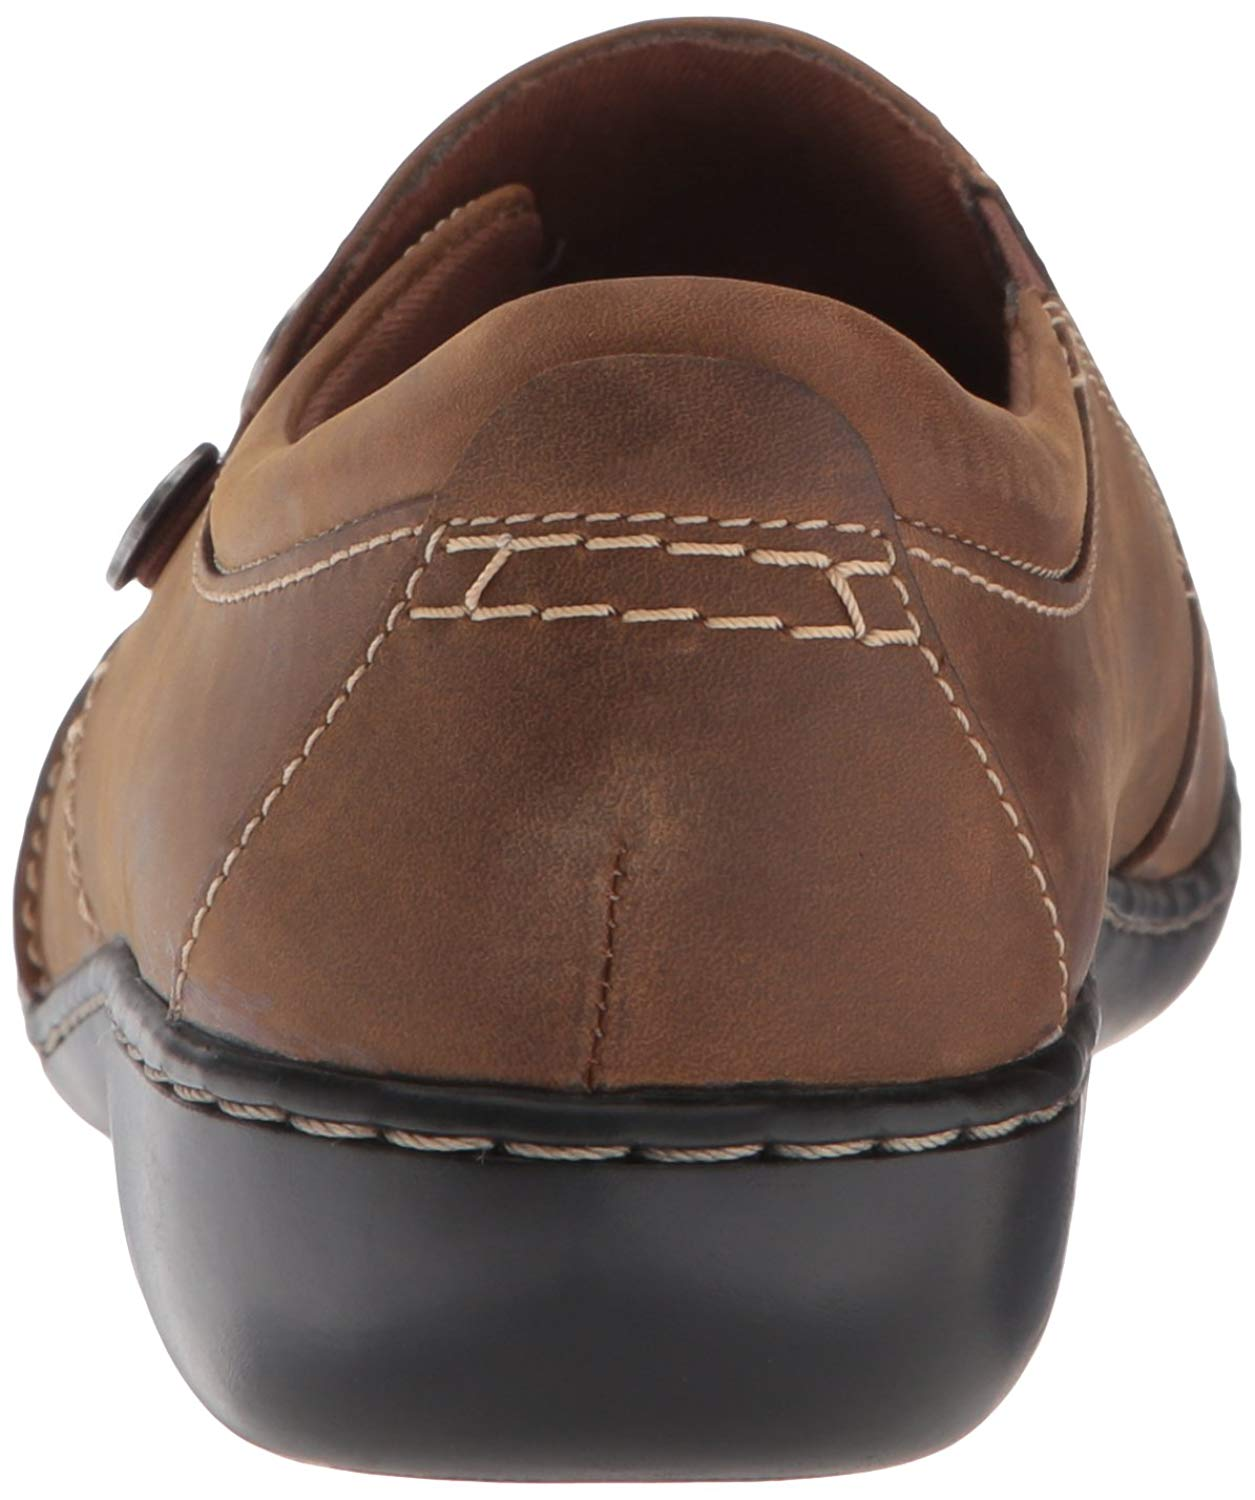 8209f0fe3e6 Clarks Womens Ashland Closed Toe Loafers